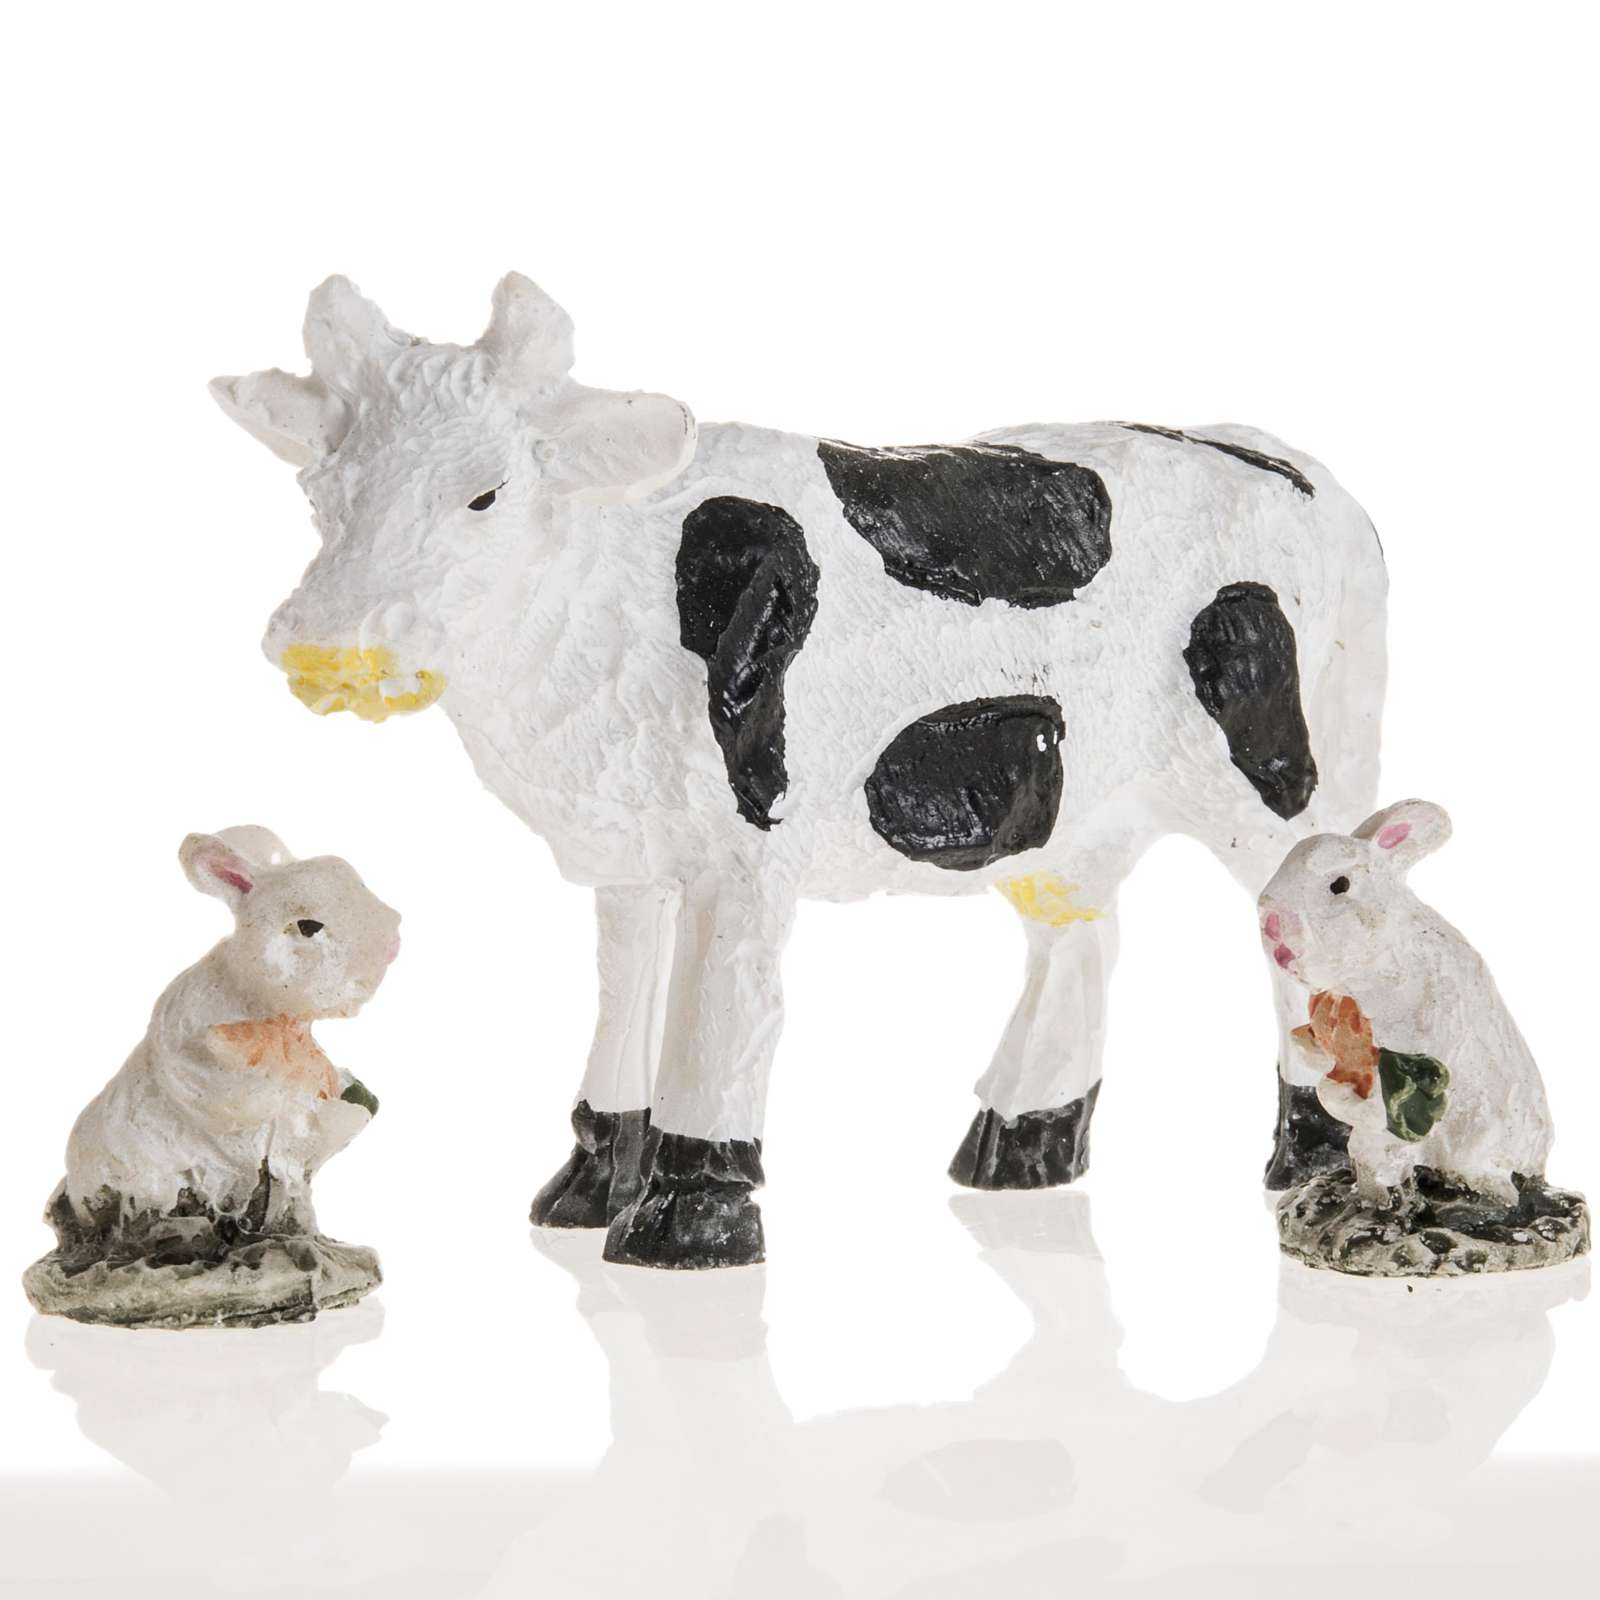 Nativity figurines, cow and rabbits in resin, 10cm 3